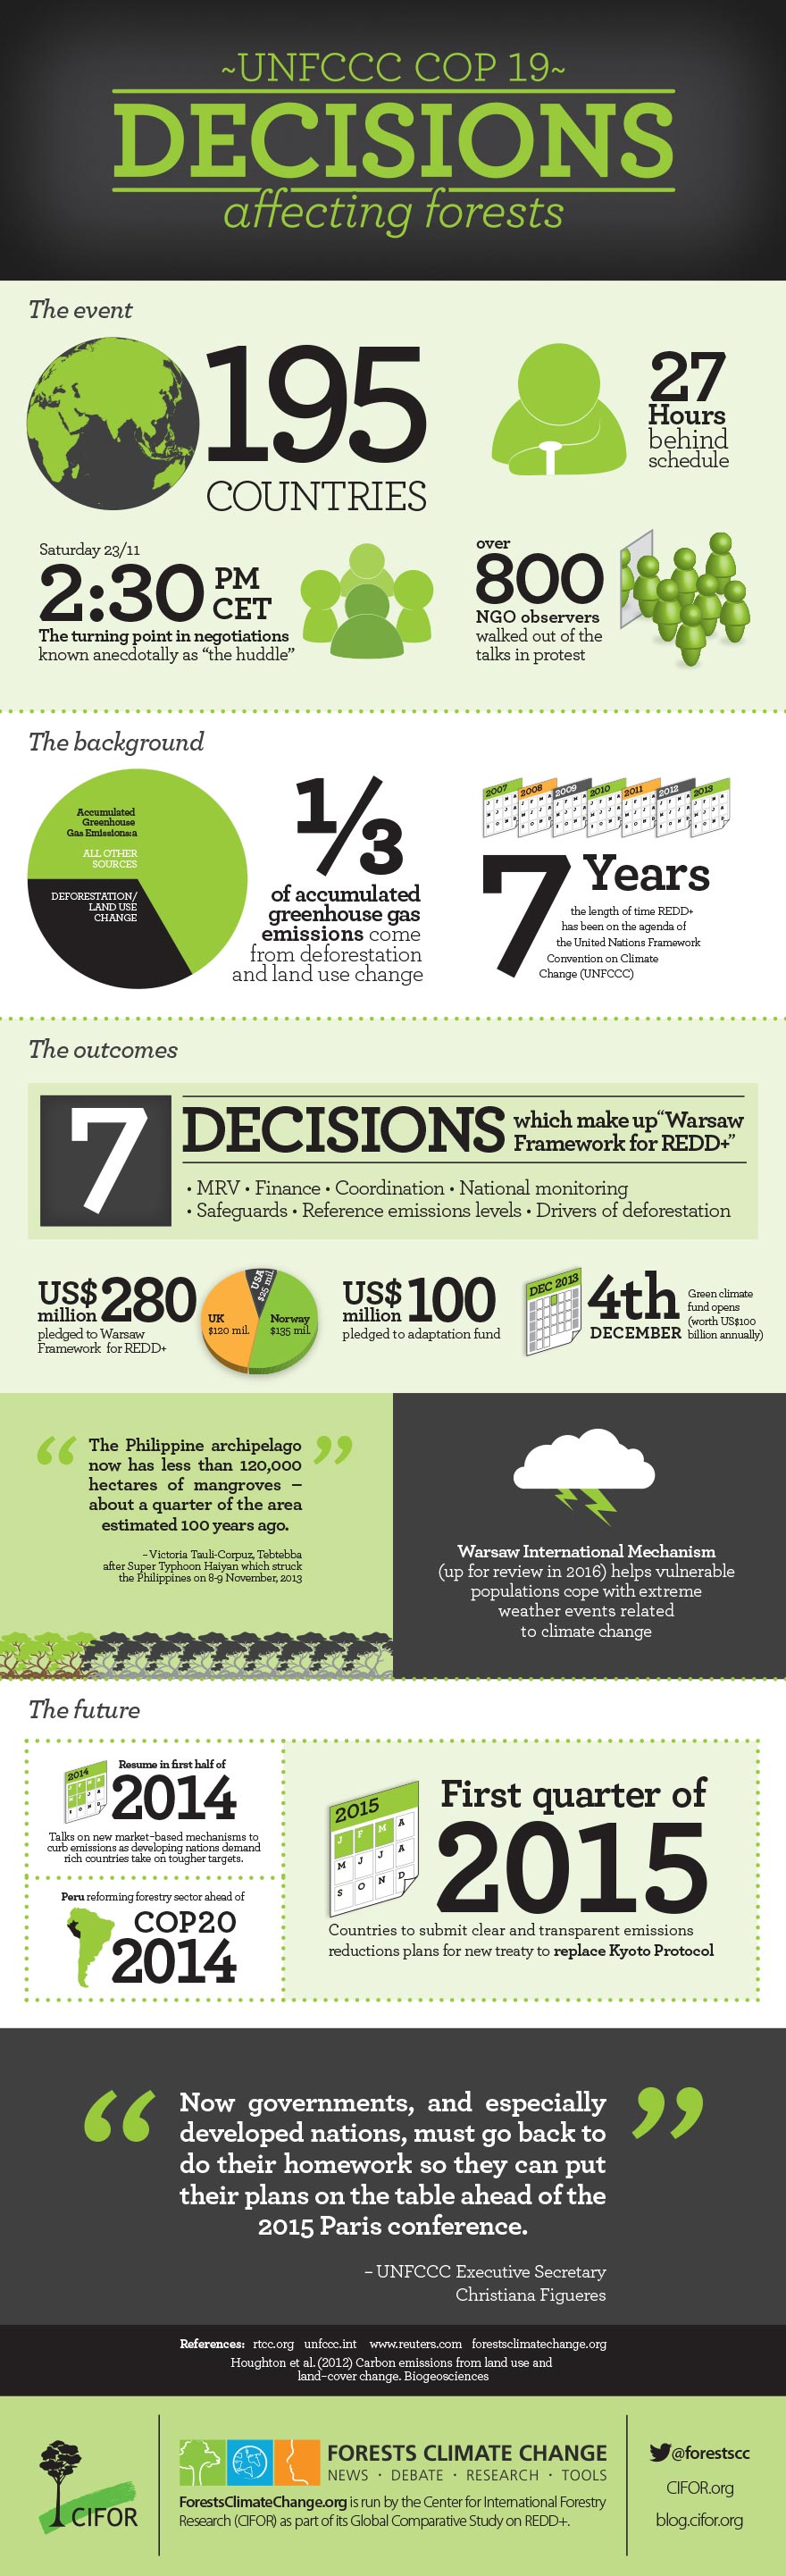 UNFCCC COP19 Decisions affecting forests - Its time for Governments to do their homework, and plan for the 2015 Conference in Paris.